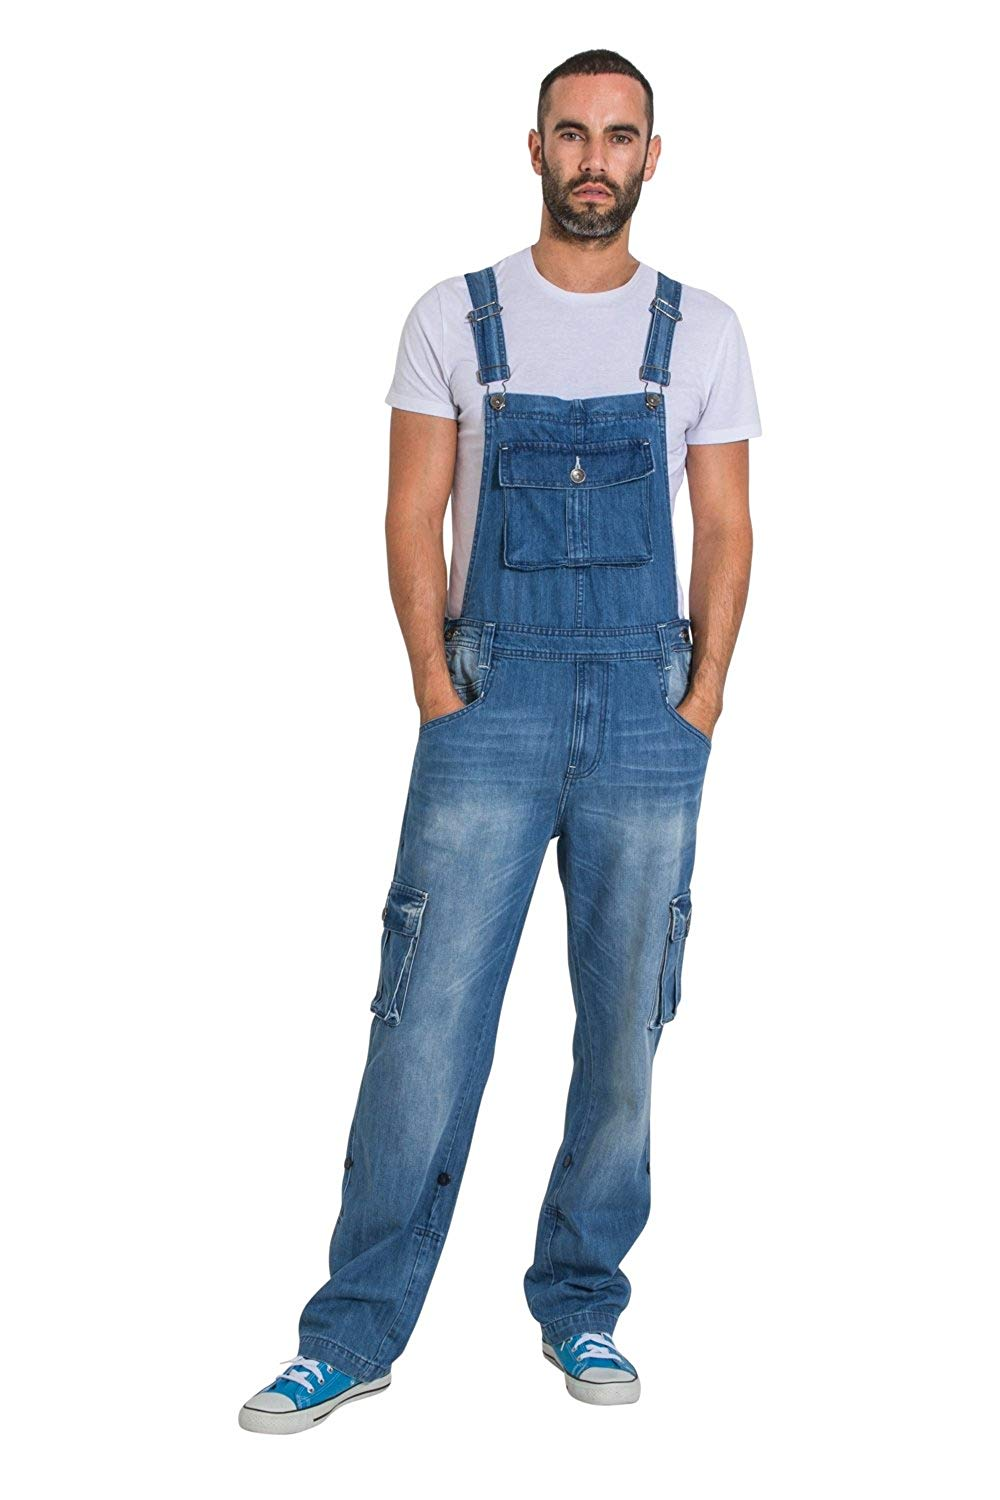 Dump fat in overalls thomas anal